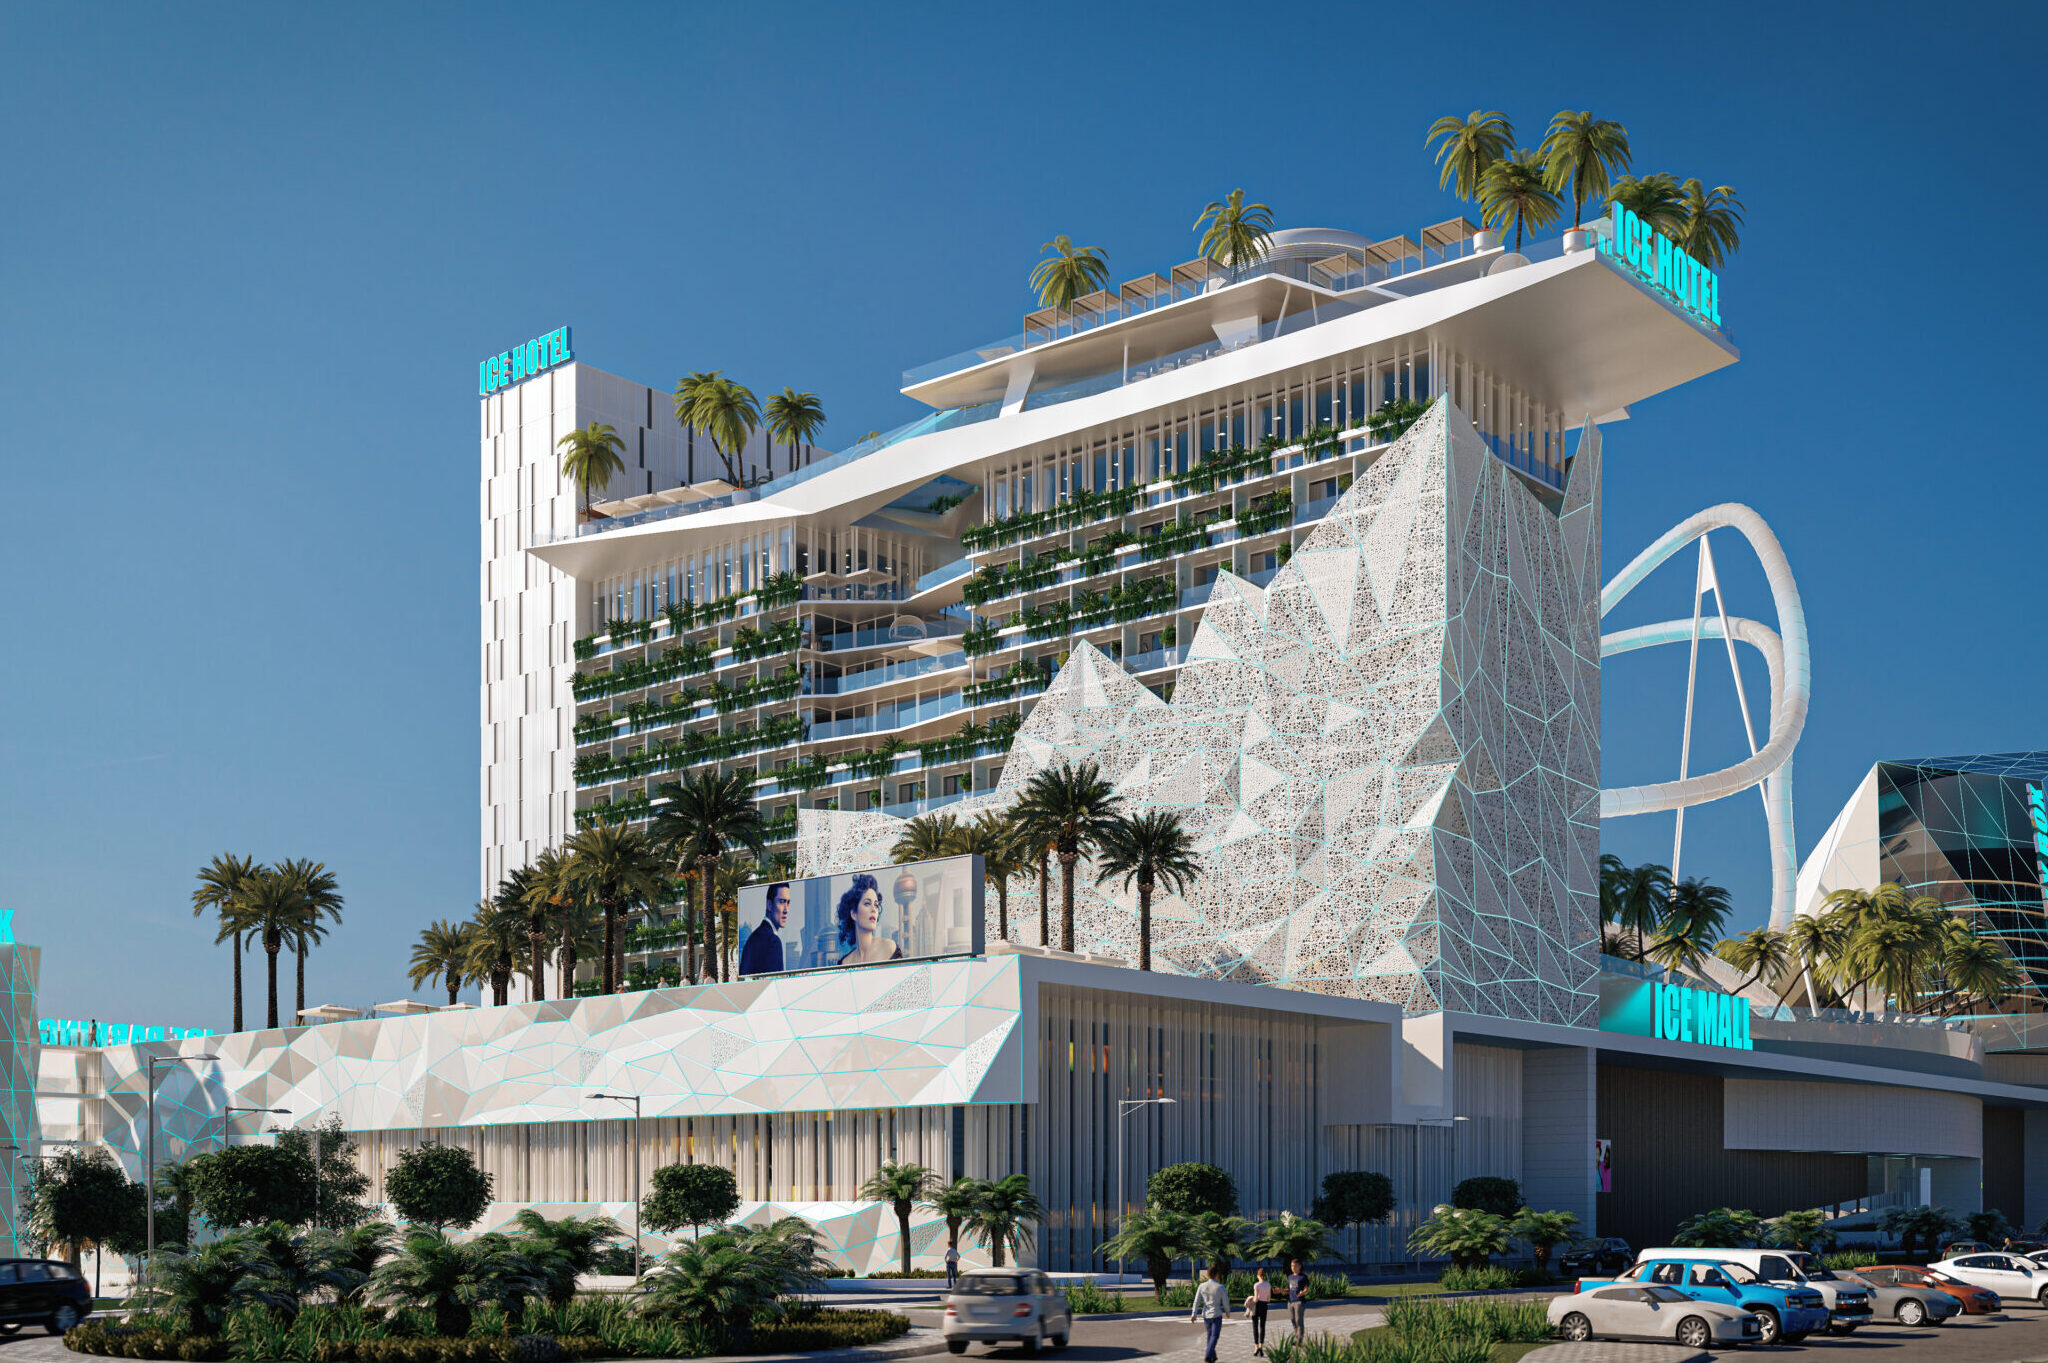 ICE MALL HOTEL & ATTRACTIONS EILAT